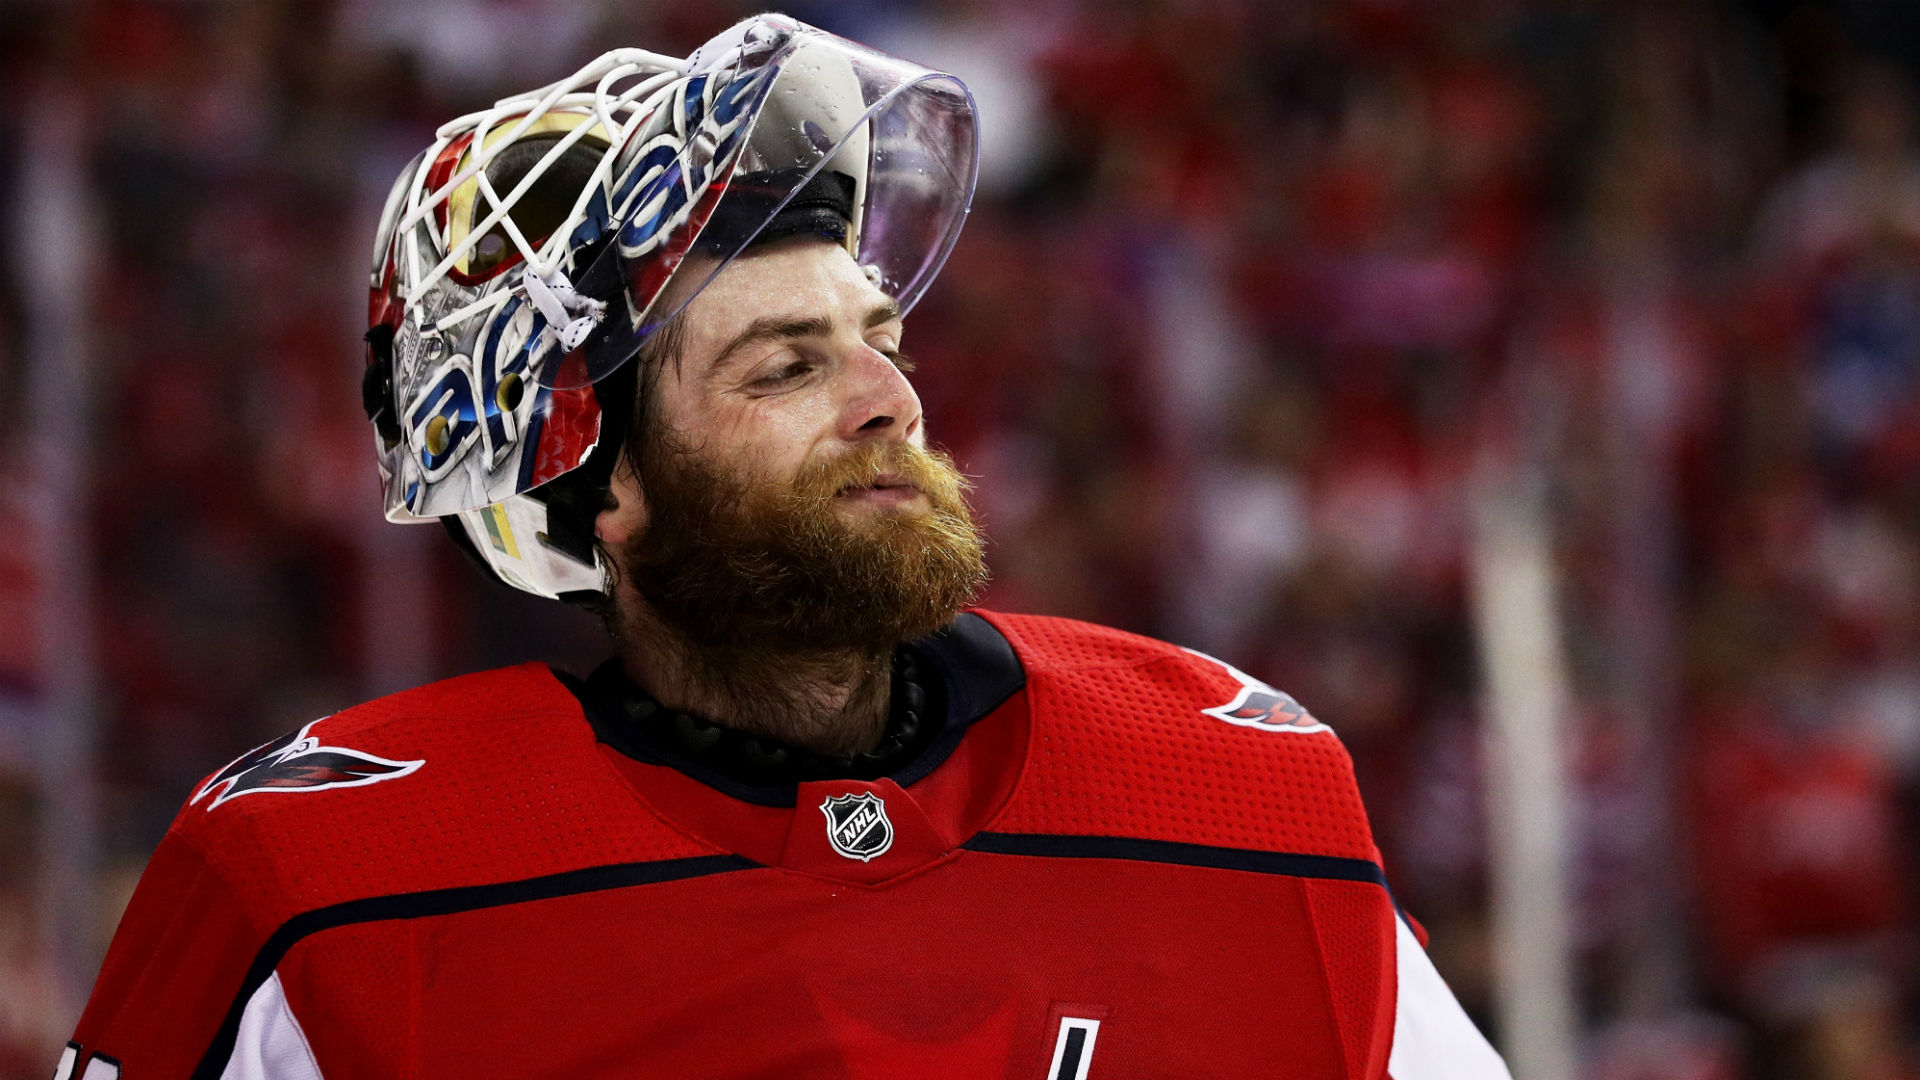 Capitals goalie Braden Holtby expresses hope that protests can build bridge over America's racial divide